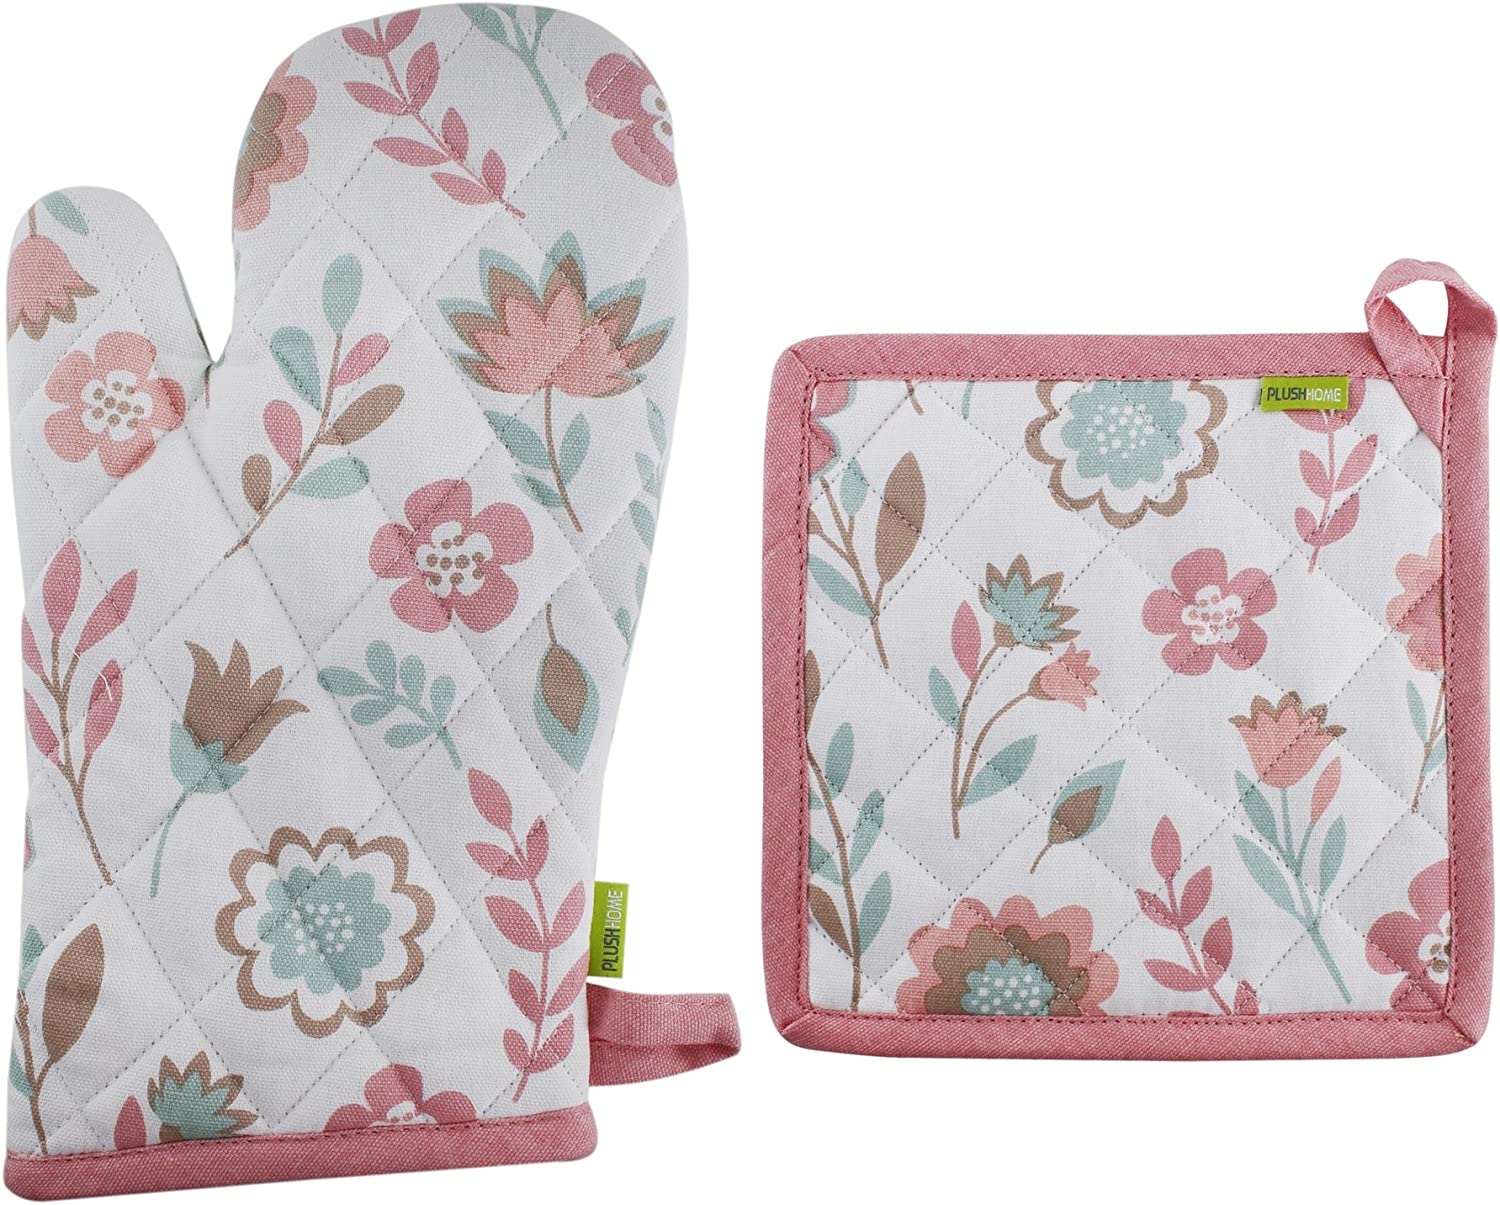 Plush Home 100% Cotton Eco-Friendly Pink Spring Fields Printed Pot Holder and Oven Mitt Set with Hanging Loop, Heat Resistant for Cooking, Baking, Grilling, Barbecue - Set of 1